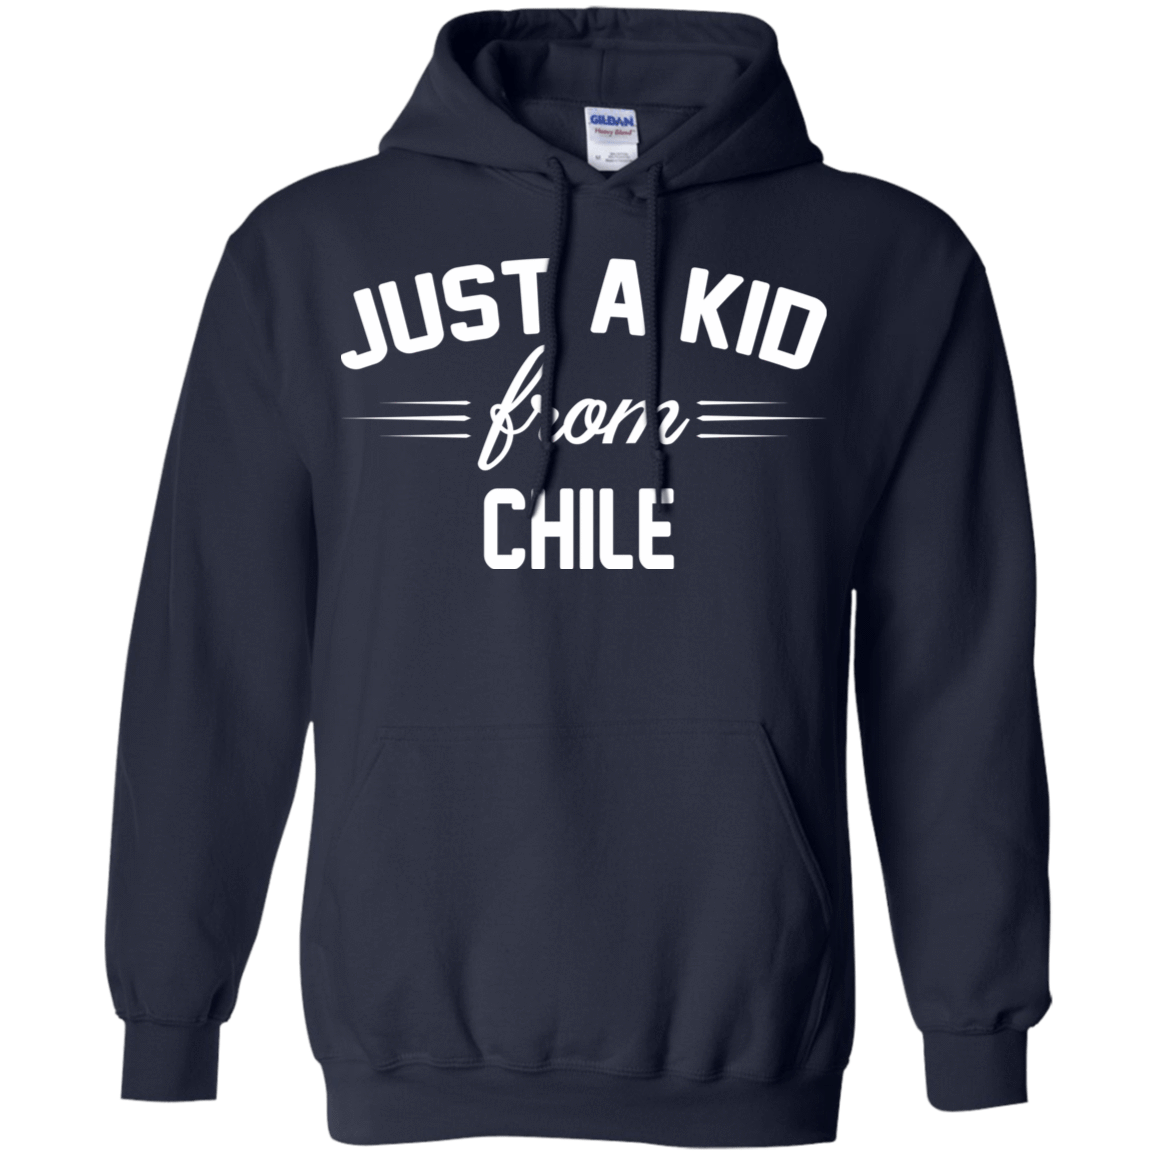 Just a Kid Store | Chile T-Shirts, Hoodie, Tank 541-4742-72092762-23135 - Tee Ript